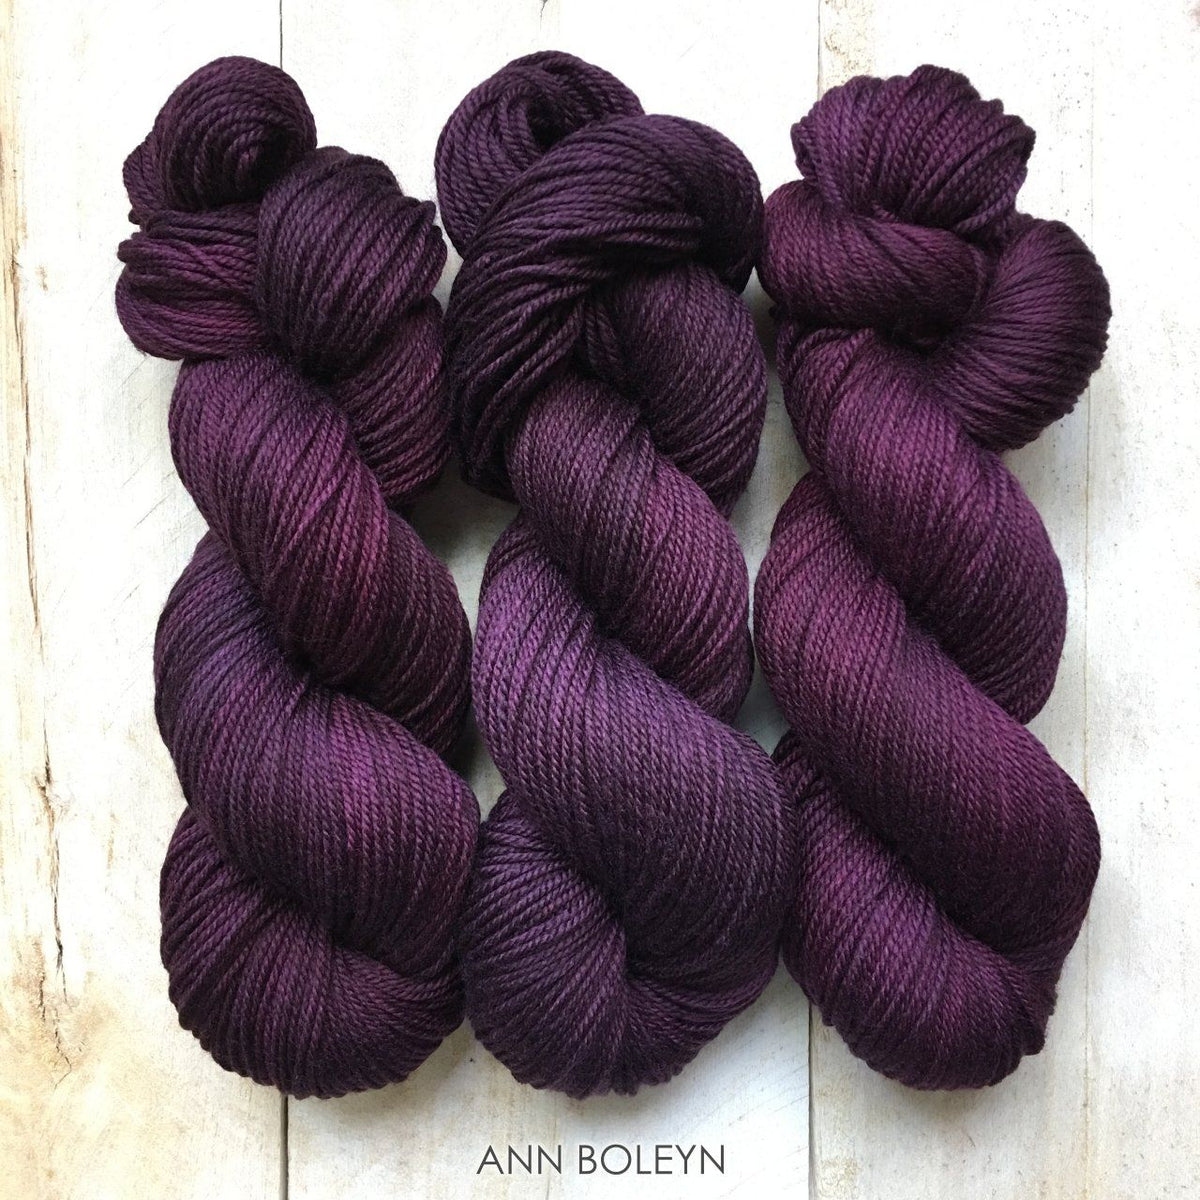 ANN BOLEYN by Louise Robert Design | DK PURE hand-dyed semi-solid yarn